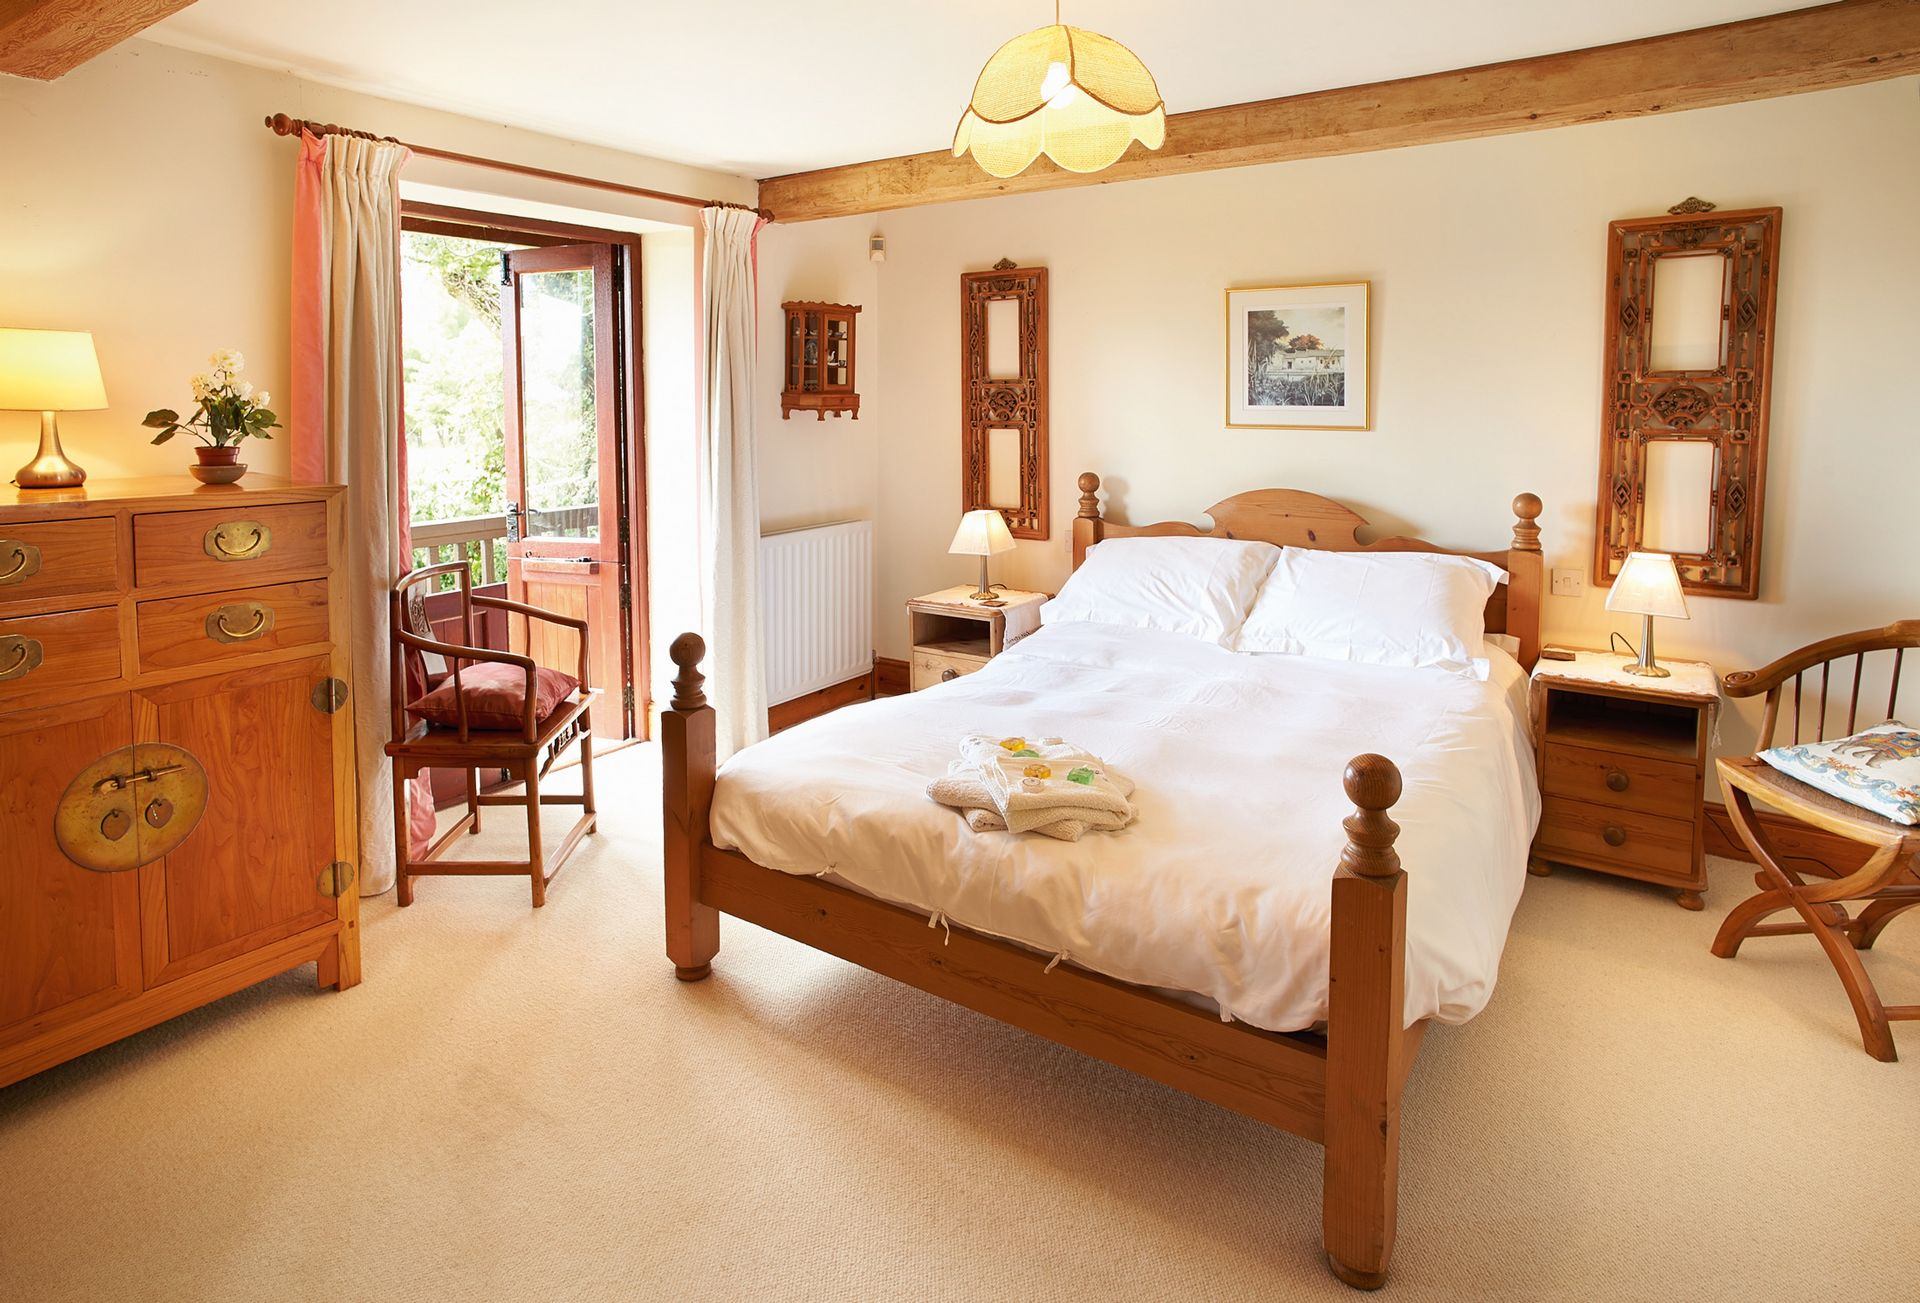 Ground floor: Master bedroom with king-size 5' bed and en-suite bathroom with shower